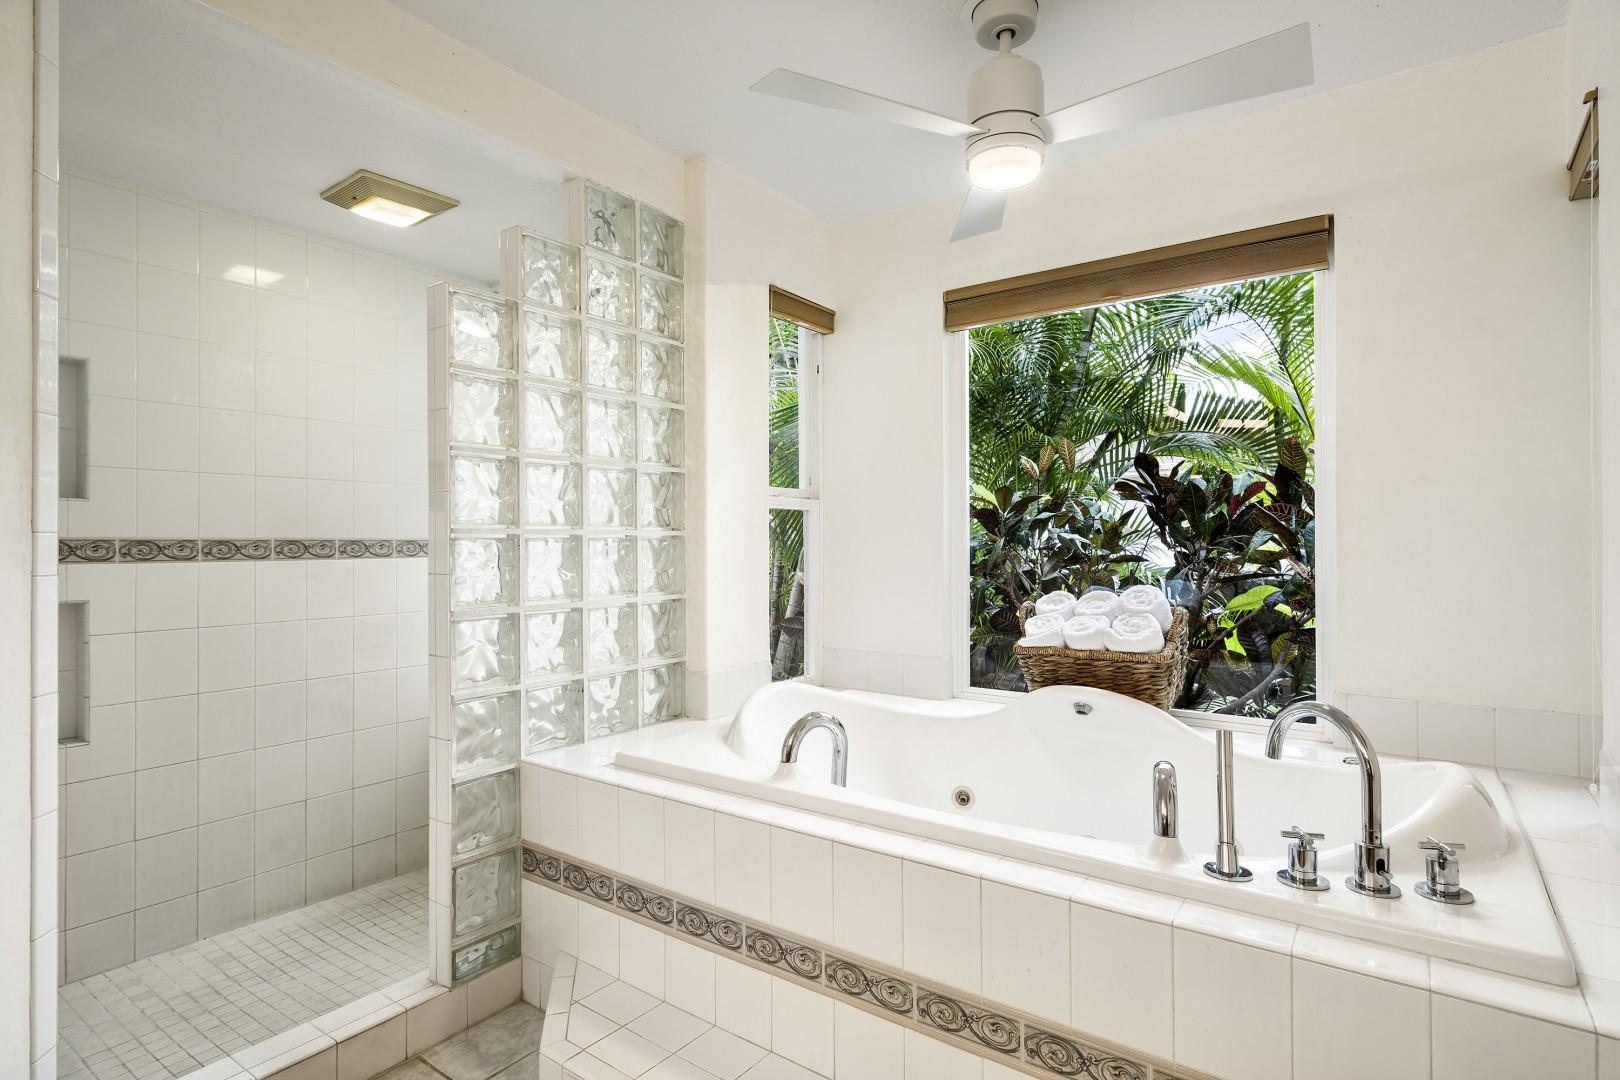 Oversized jetted soaking tub in the master bathroom